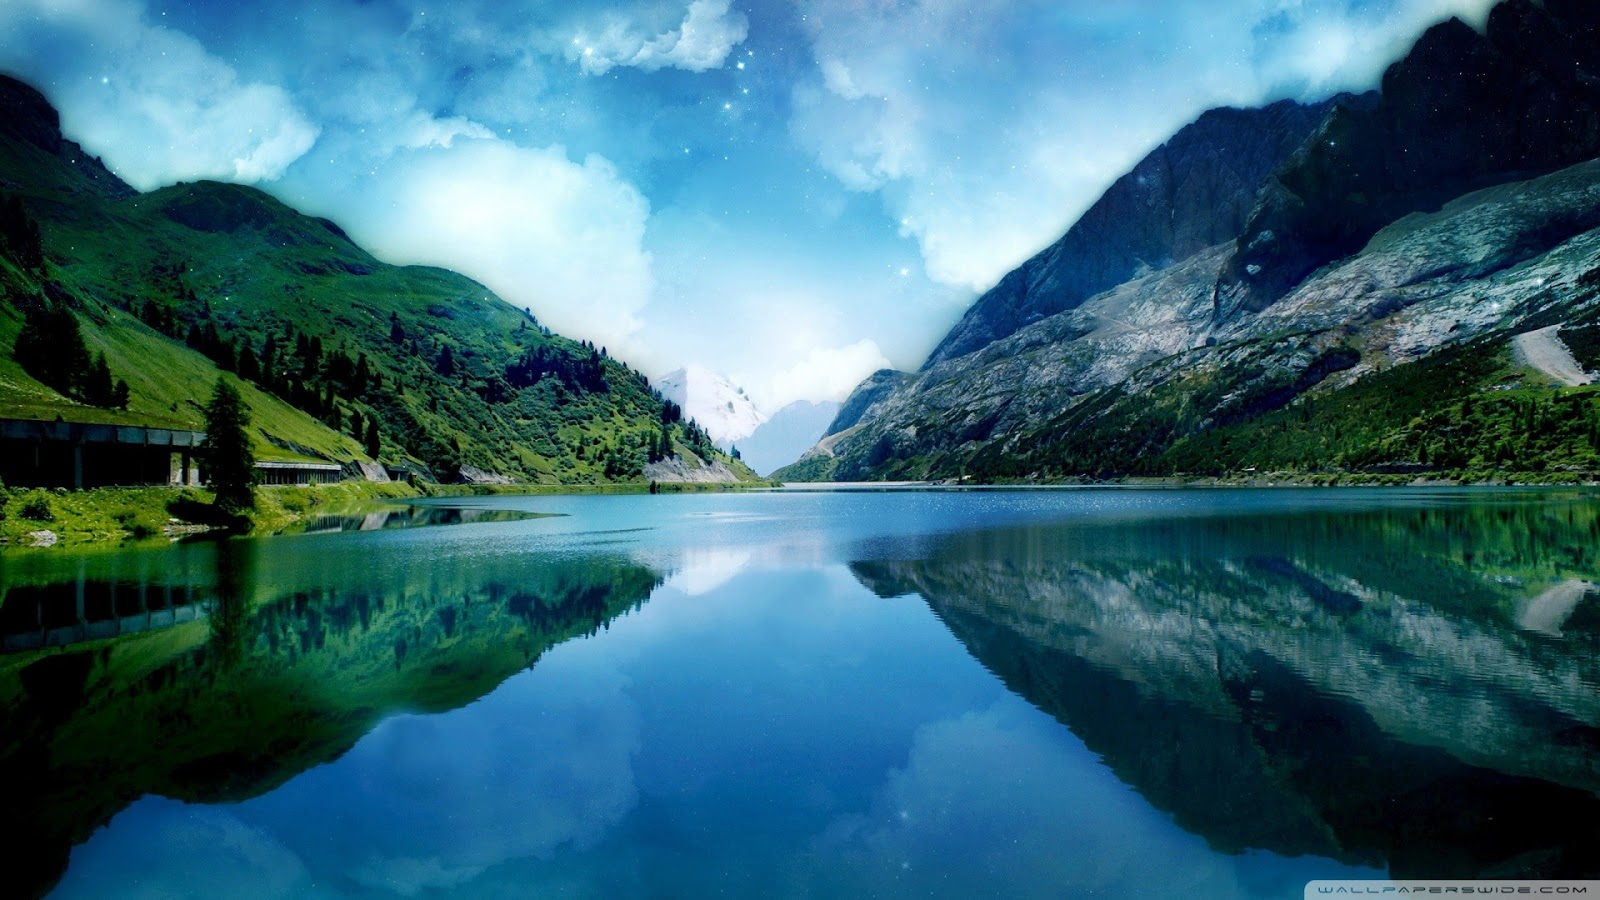 World Most Beautiful Lake Wallpapers | Most beautiful places in the world | Download Free Wallpapers